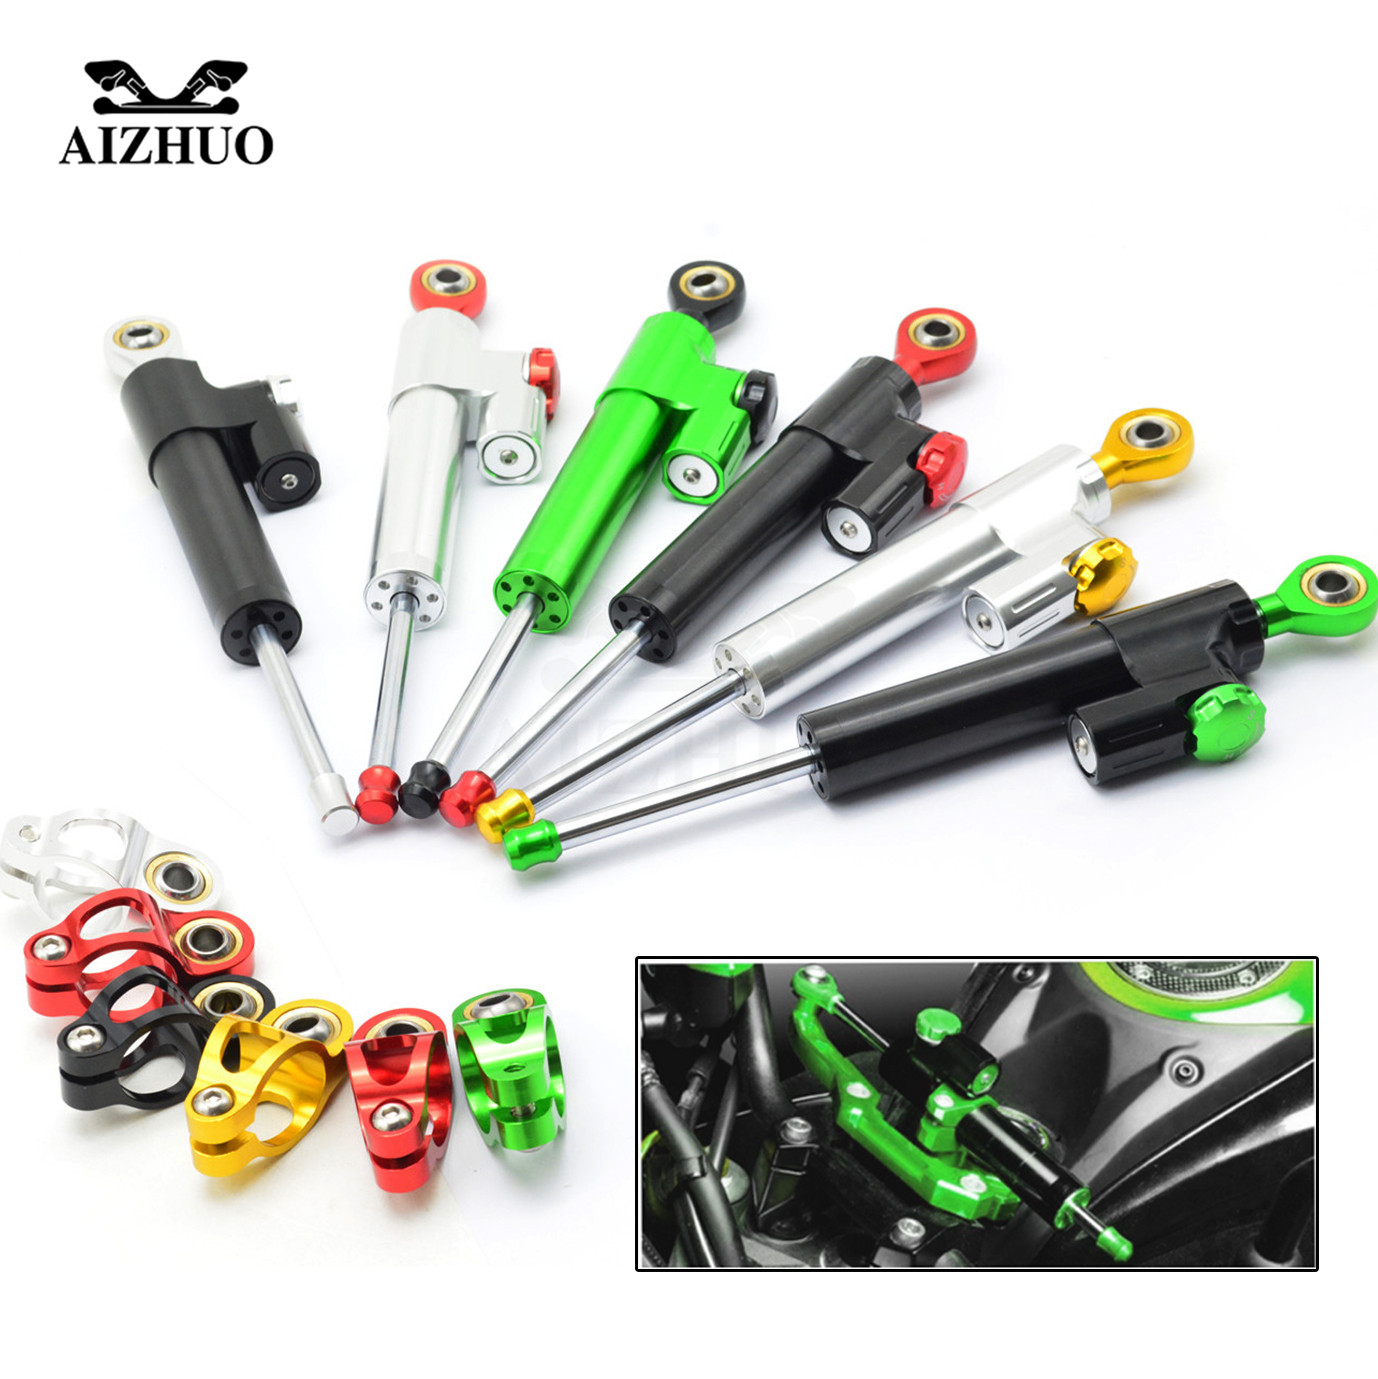 Universal Motorcycle Damper Steering Stabilize Safety Control Aluminum For HONDA CRF1000L CRF 1000L Africa Twin CB600F X-11 high quality zp500a 2cz concave type convex type silicon rectifier common rectifier tube